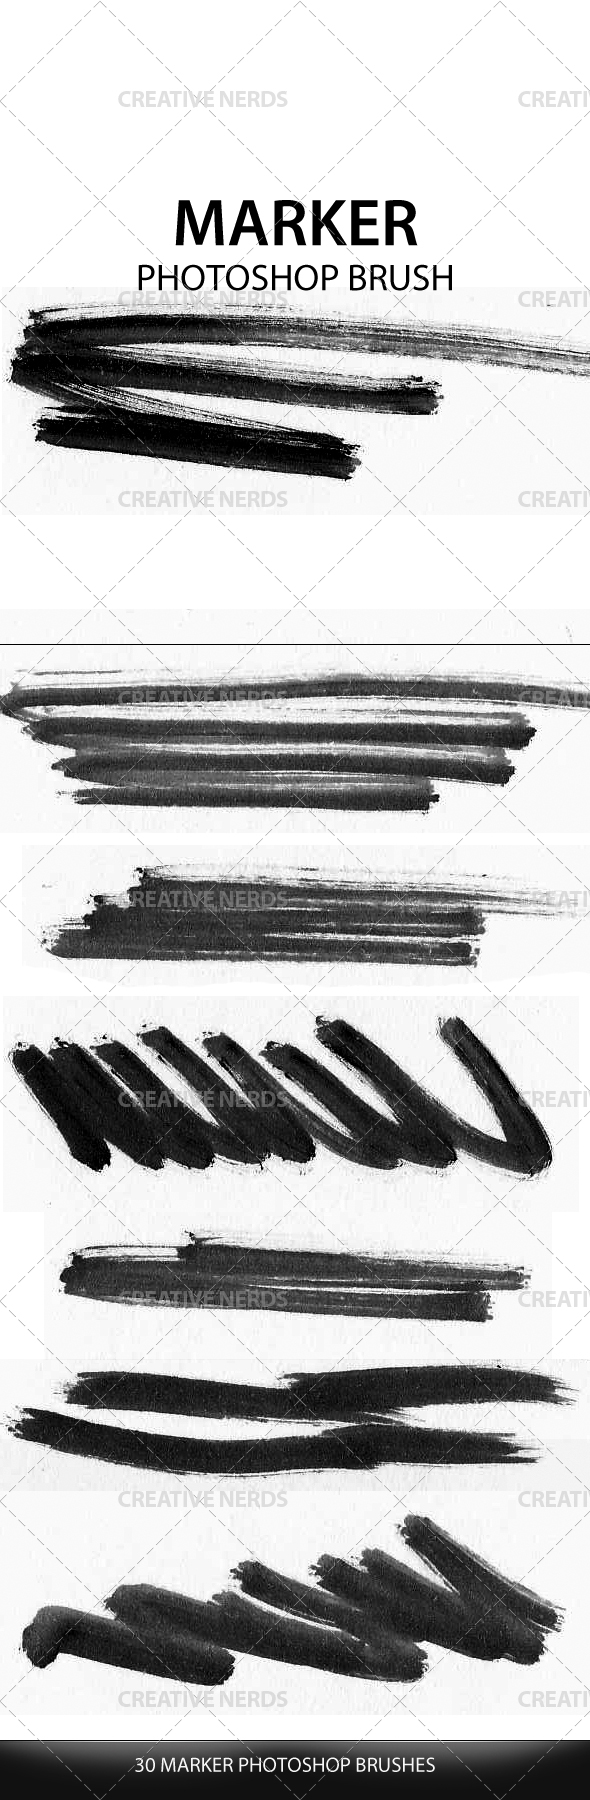 marker photoshop brush preview 30 Marker Photoshop Brush Strokes